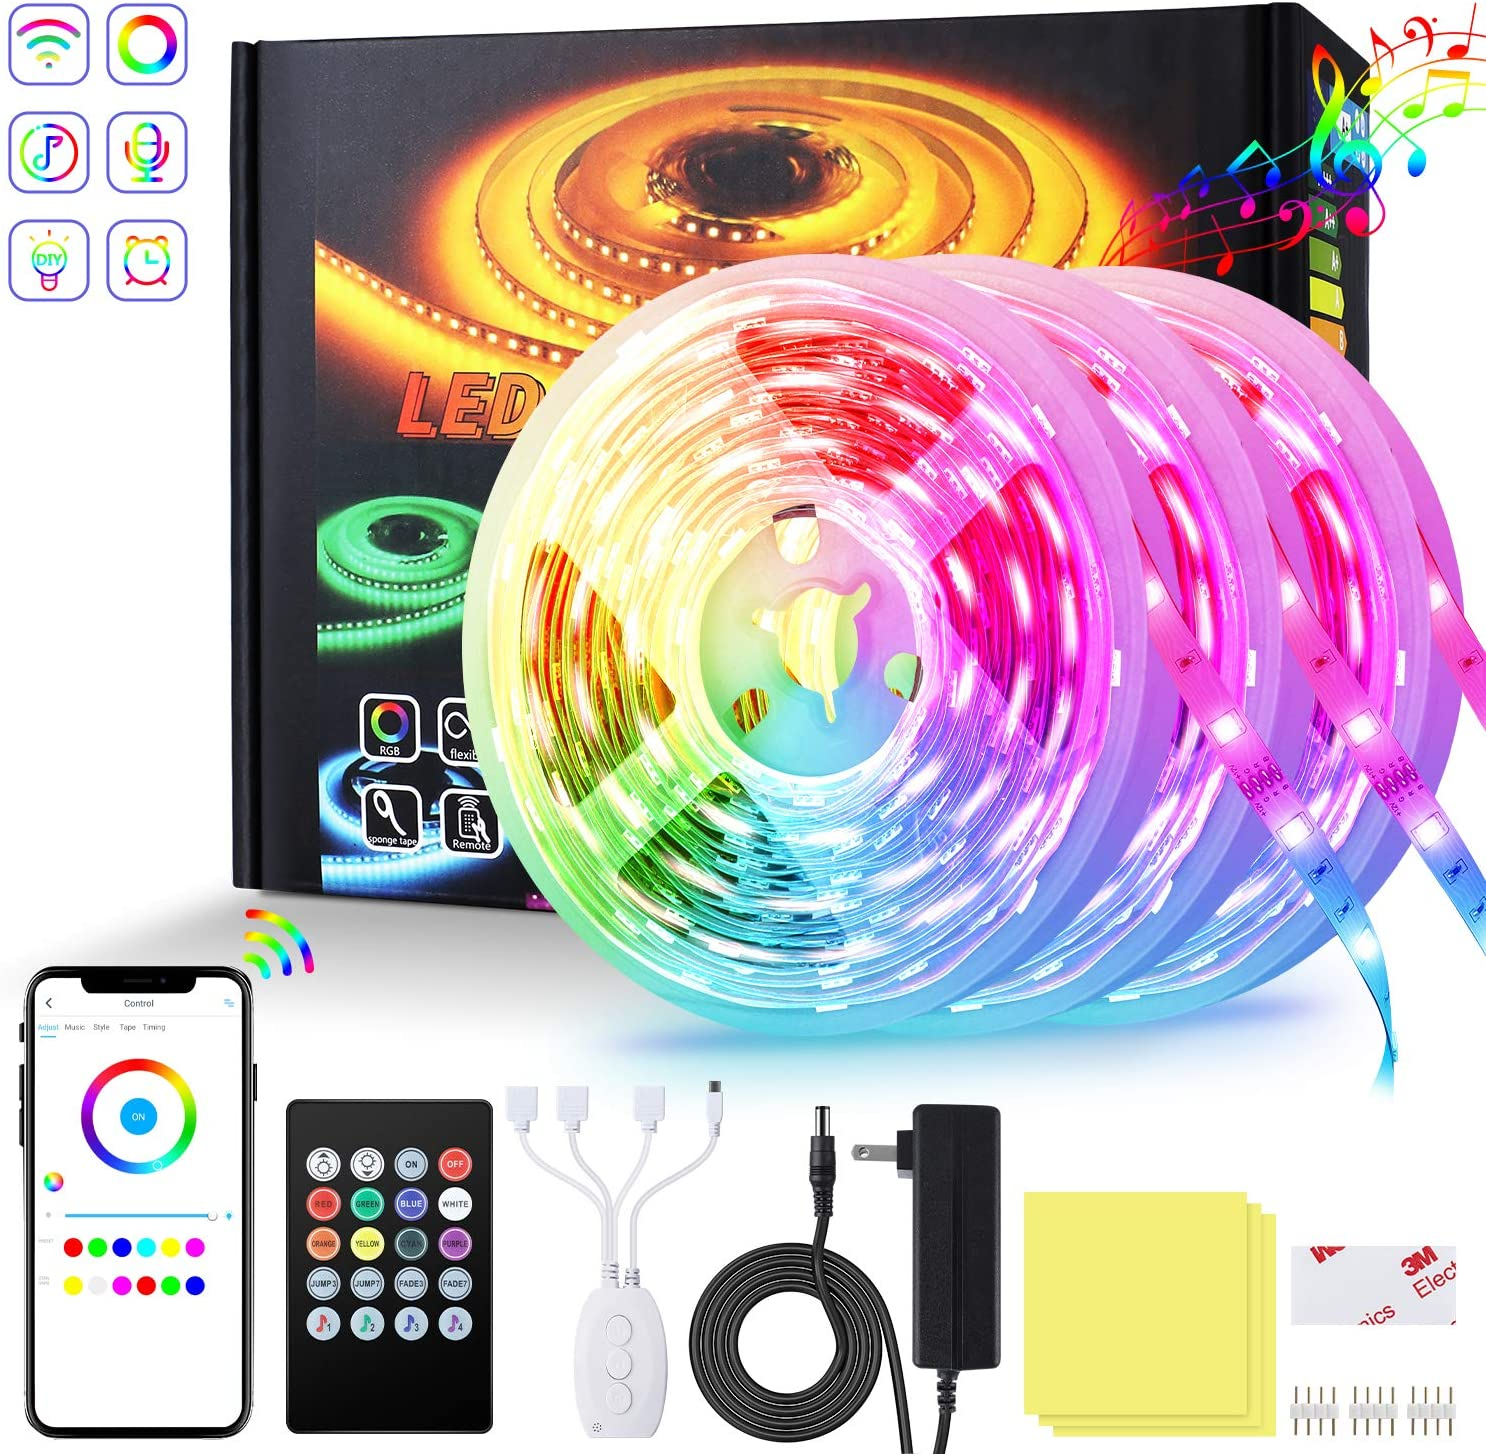 Led Strip Lights for Bedroom 50ft RGB LED Lights SMD 16 Million Colors LED Strip Lights, Music sync Color Changing LED Lights Smart WiFi Works with Alexa for Kitchen Bedroom Party Home Decor Holiday